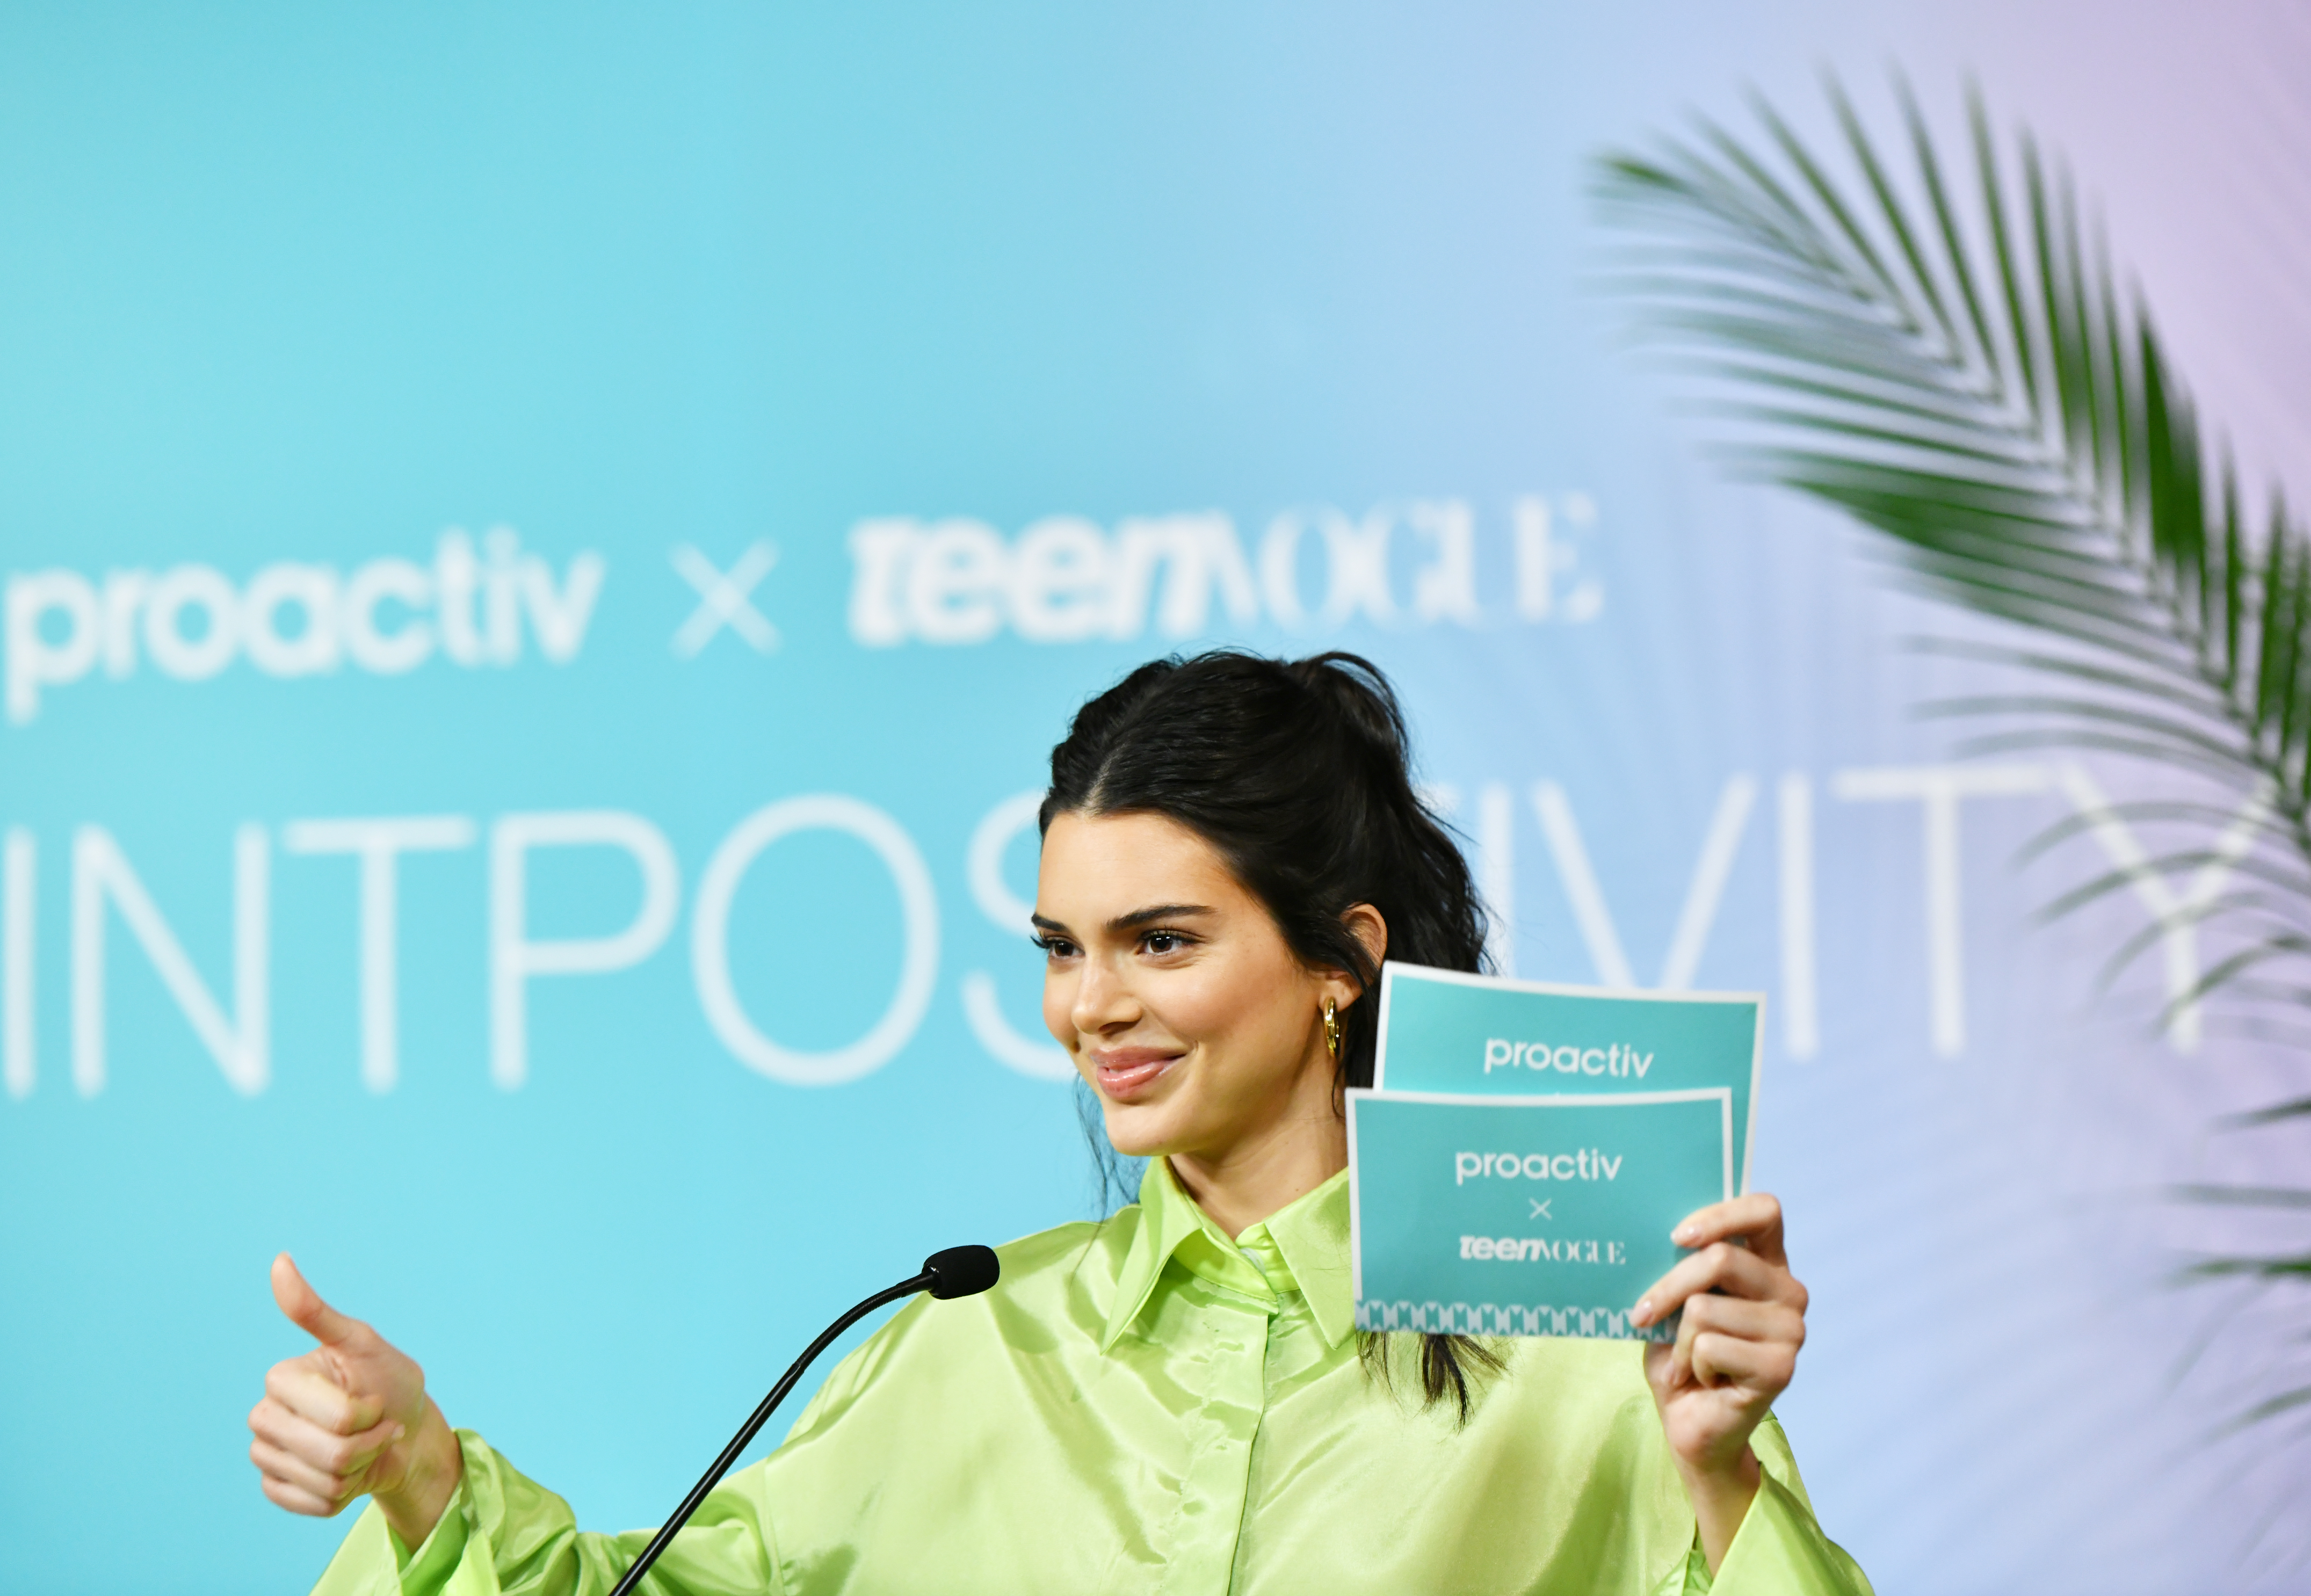 Proactiv Works to Change the Conversation about Acne with New Initiatives image